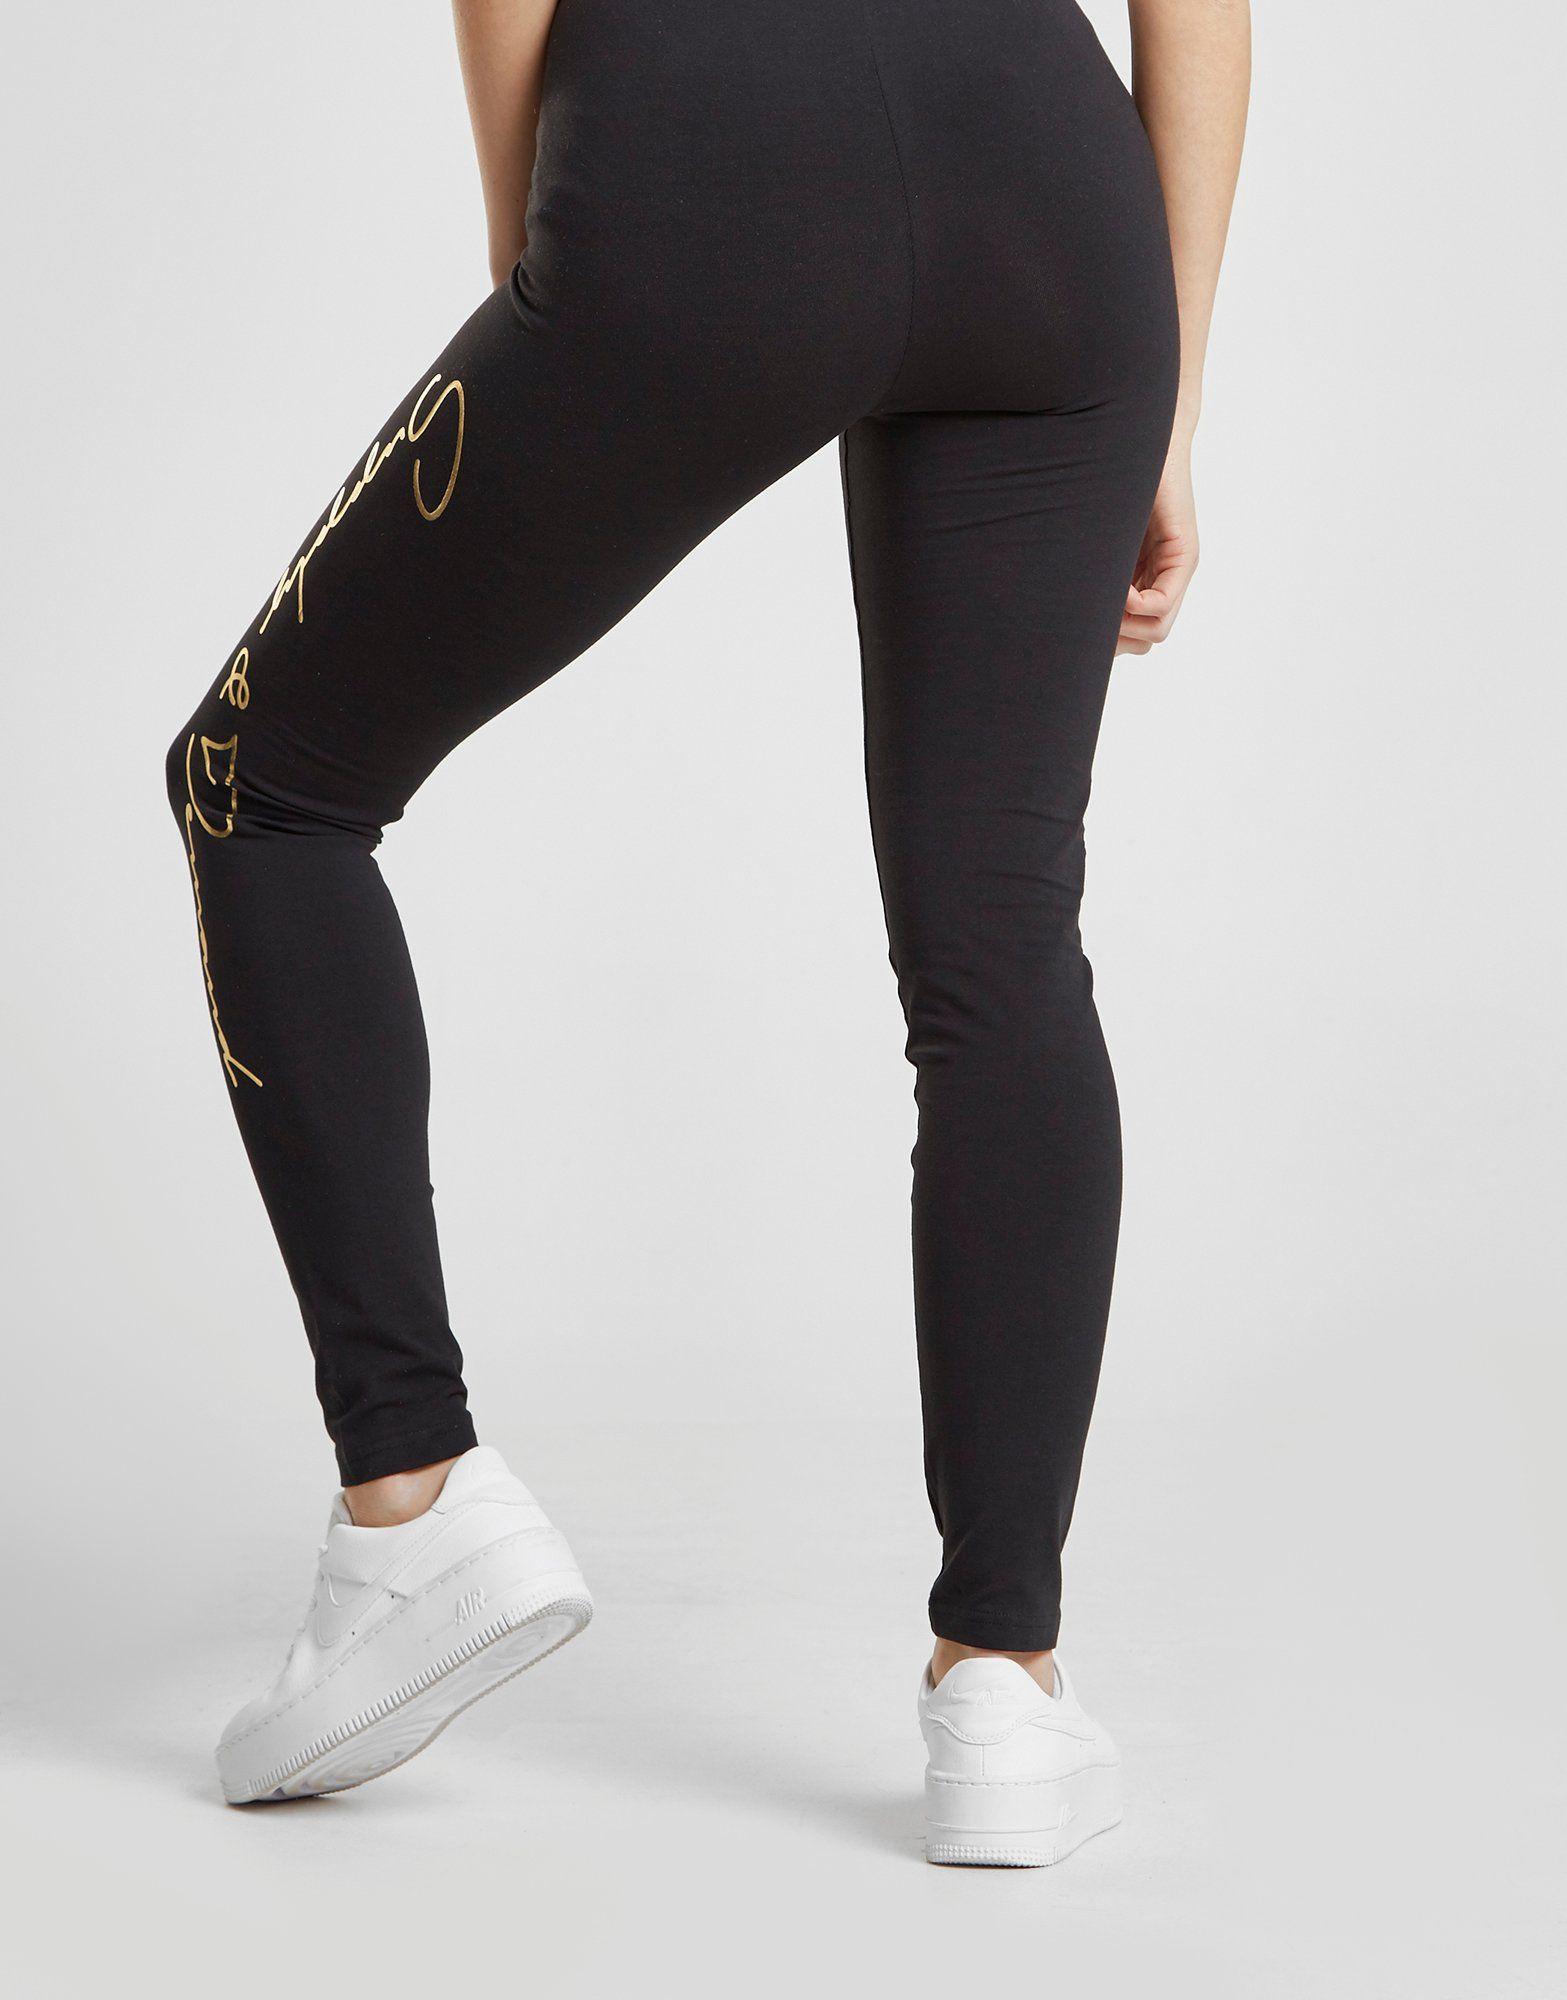 Supply & Demand Metallic Script Leggings